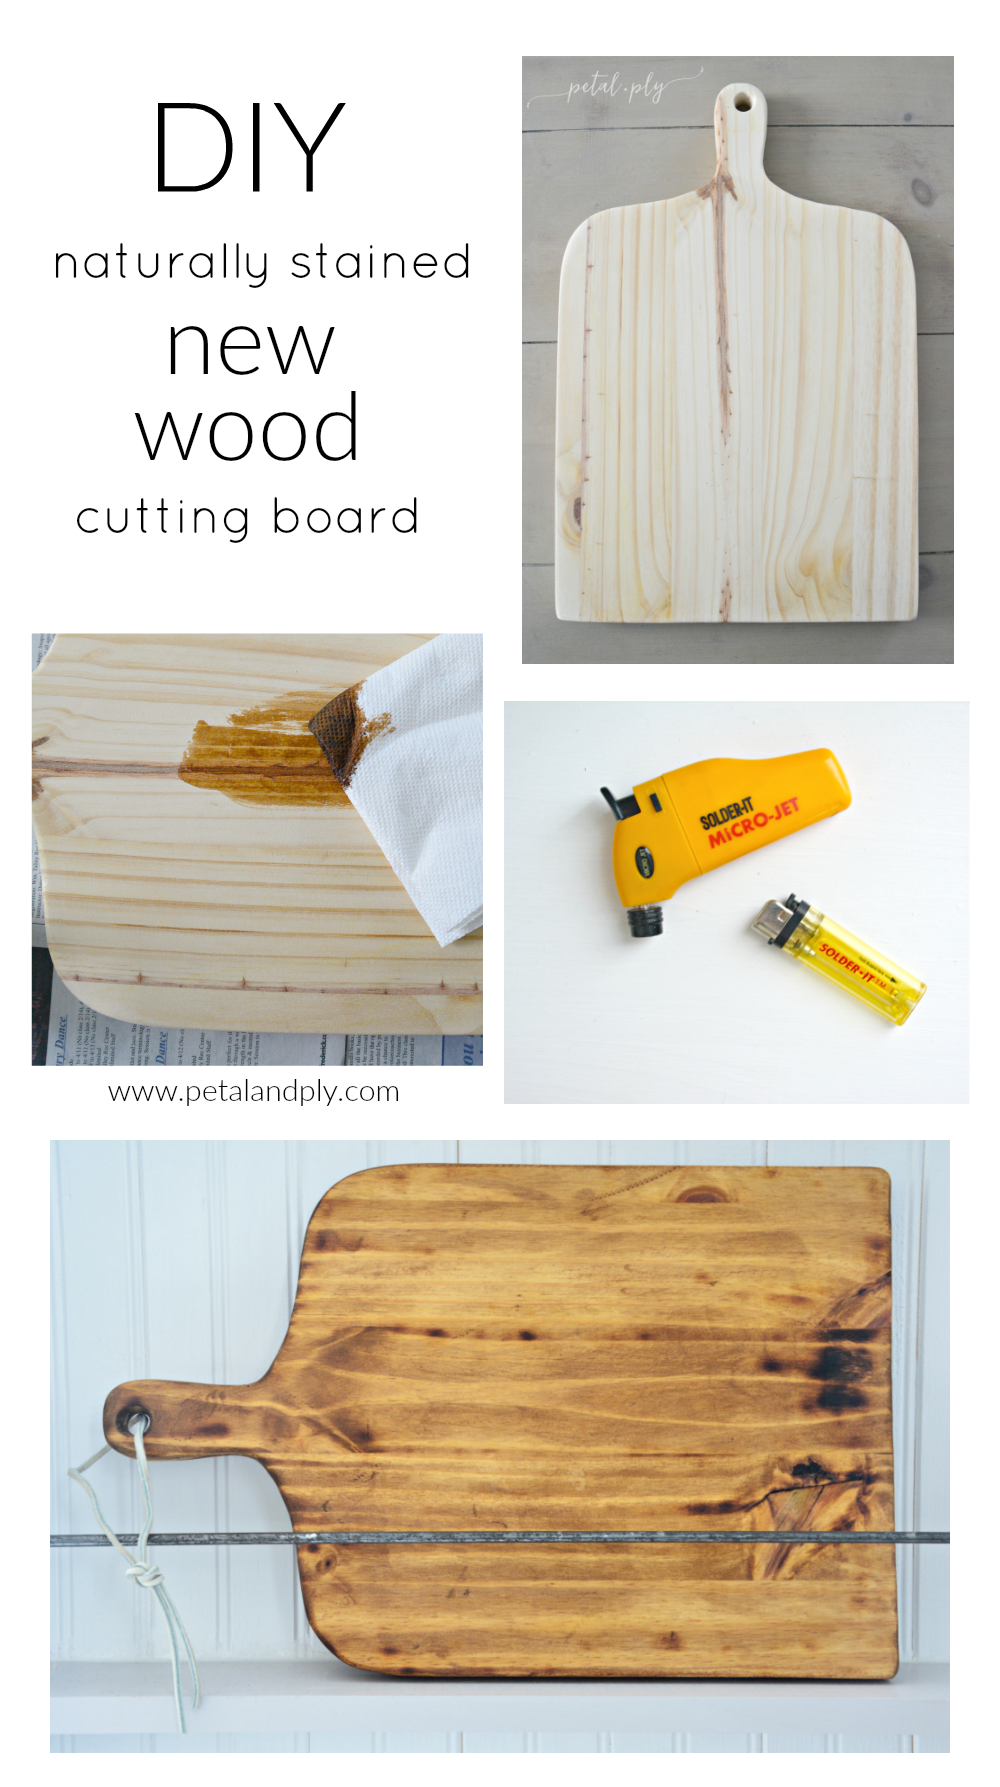 DIY-naturally-stained-new-wood-cutting-board-collage